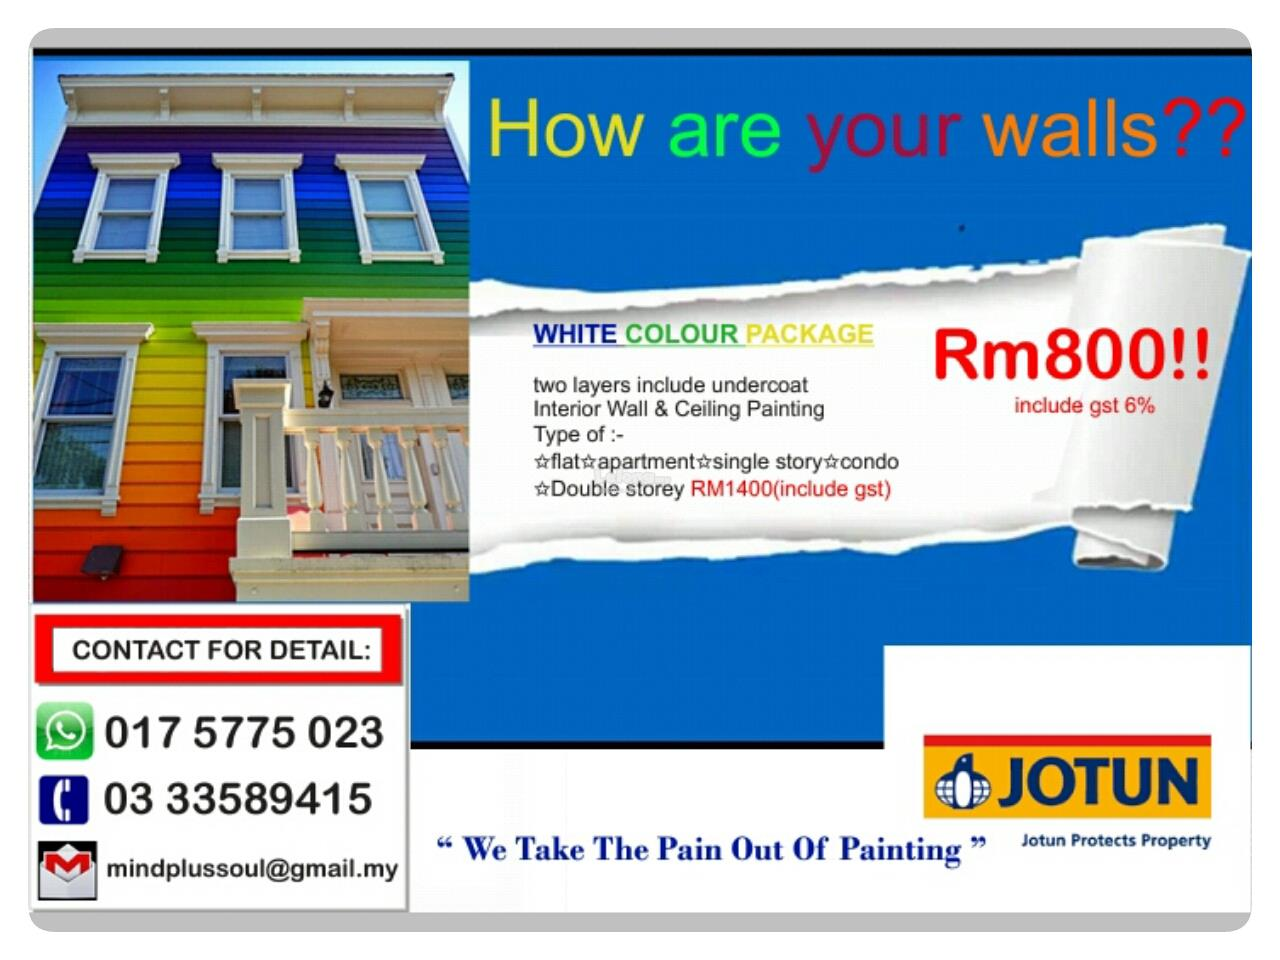 Providing professional, commercial, and residential painting services